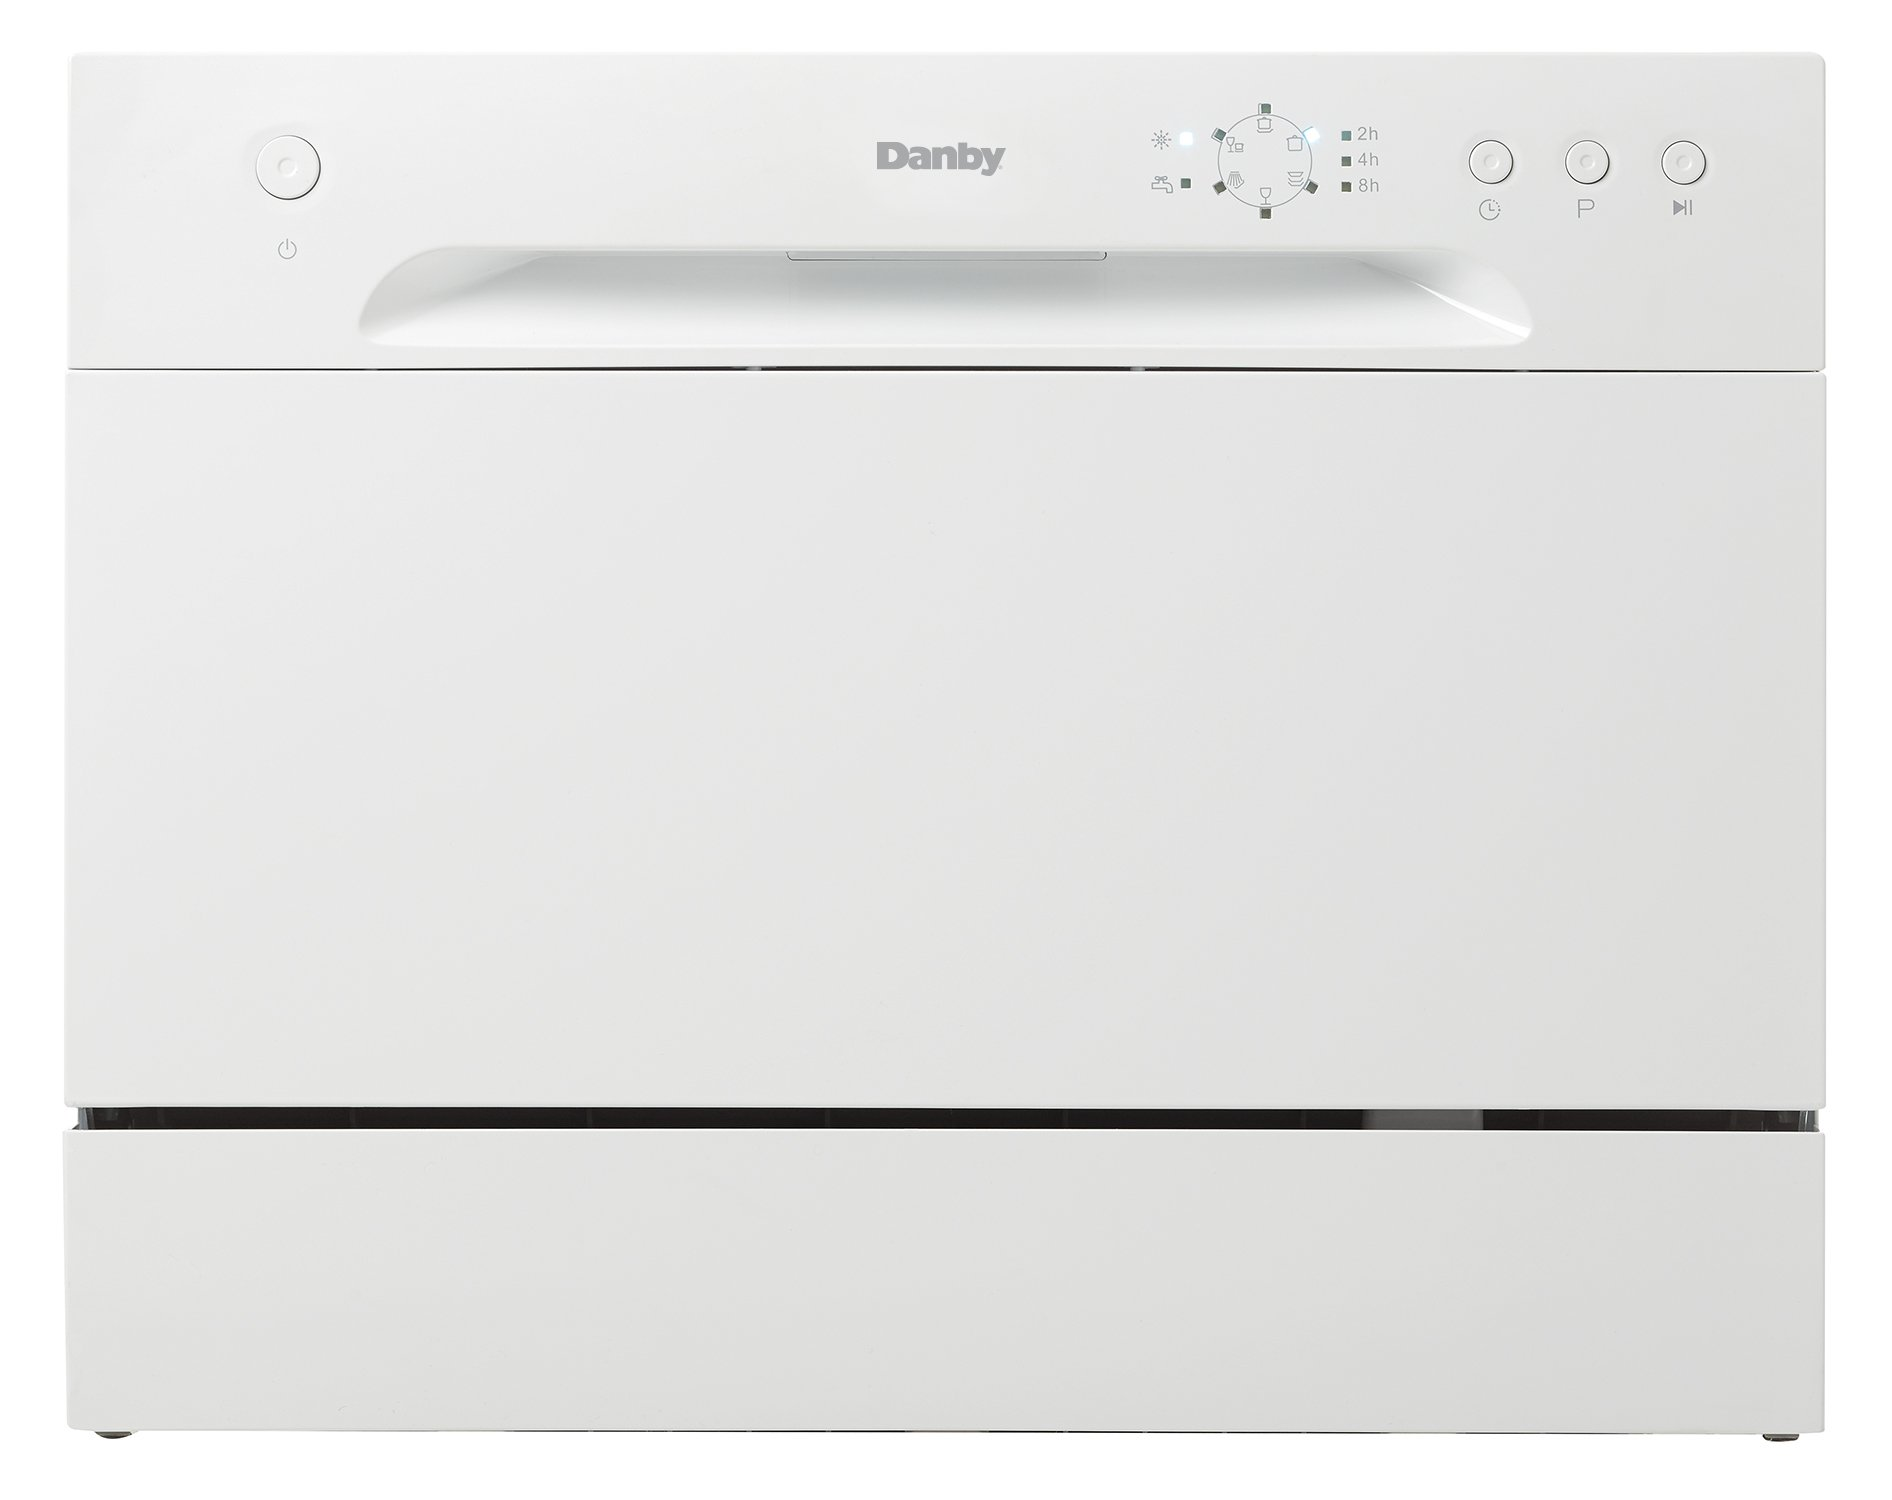 (New Model) Danby DDW621WDB Countertop Dishwasher, White by Danby